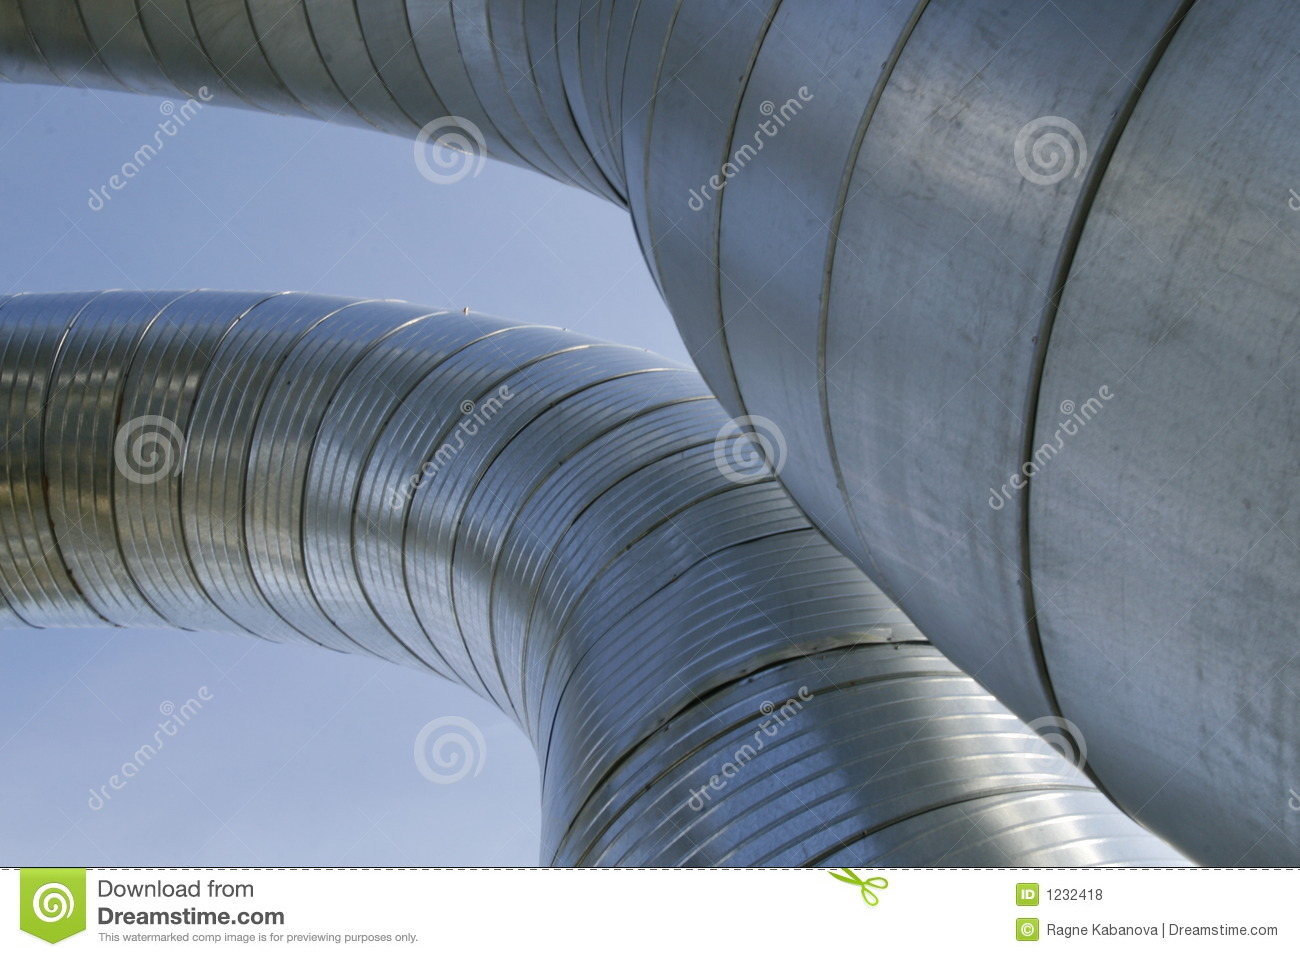 Ventilation Ducts Royalty Free Stock Photos Image: 1232418 #82A328